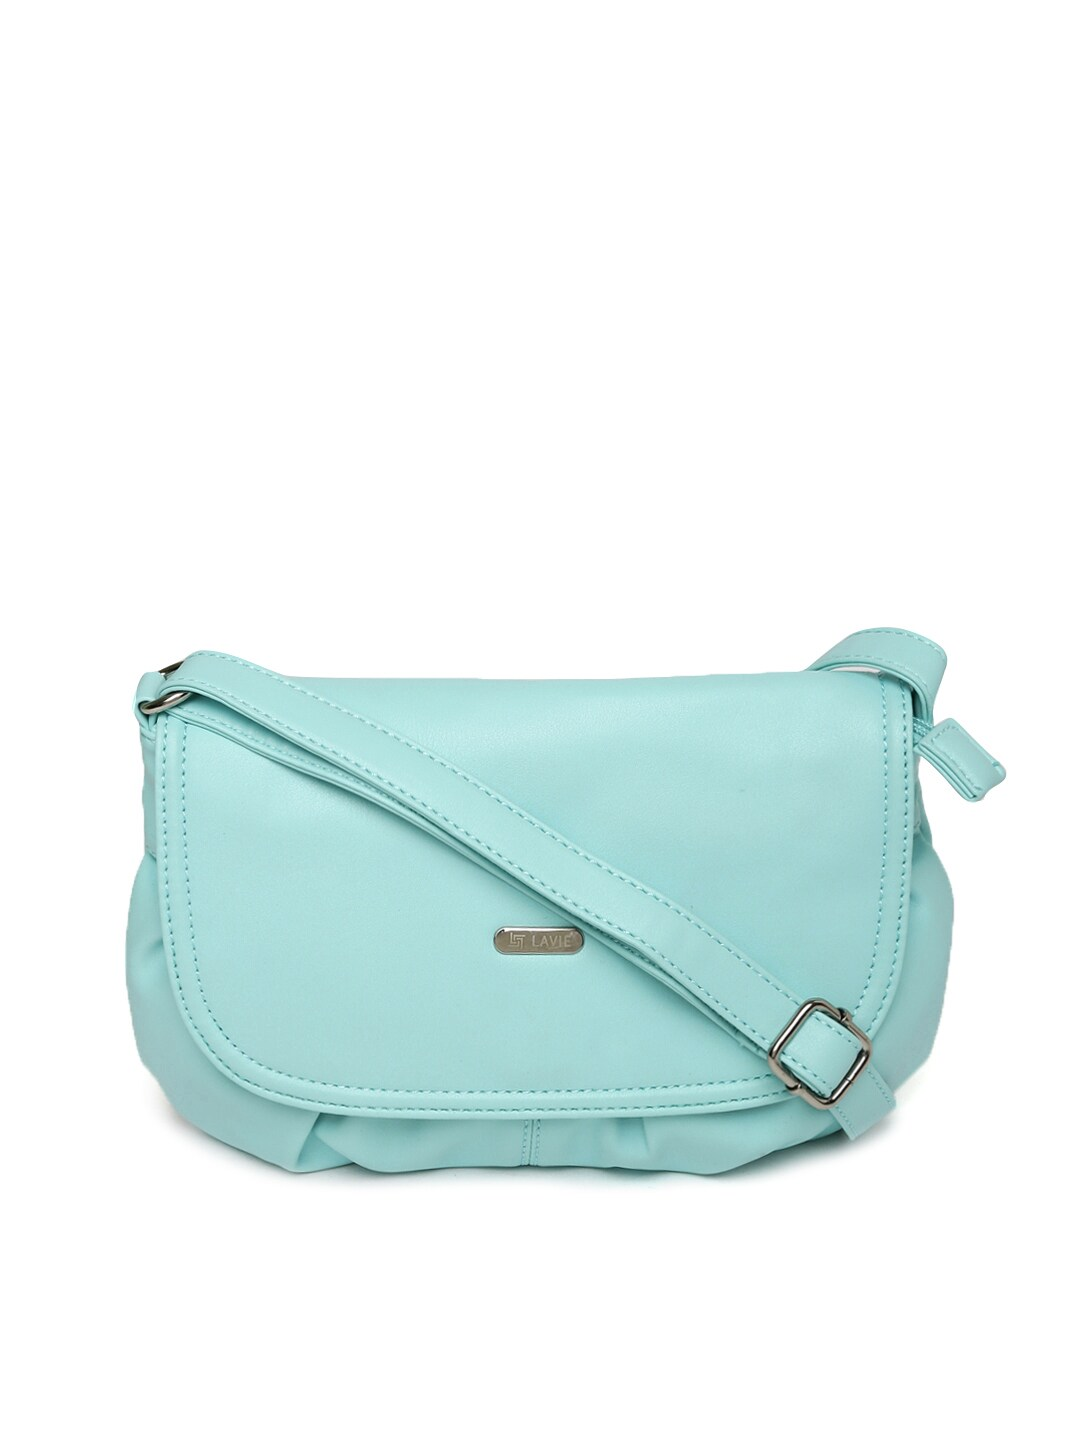 Buy Lavie Sea Green Sling Bag - Handbags for Women | Myntra